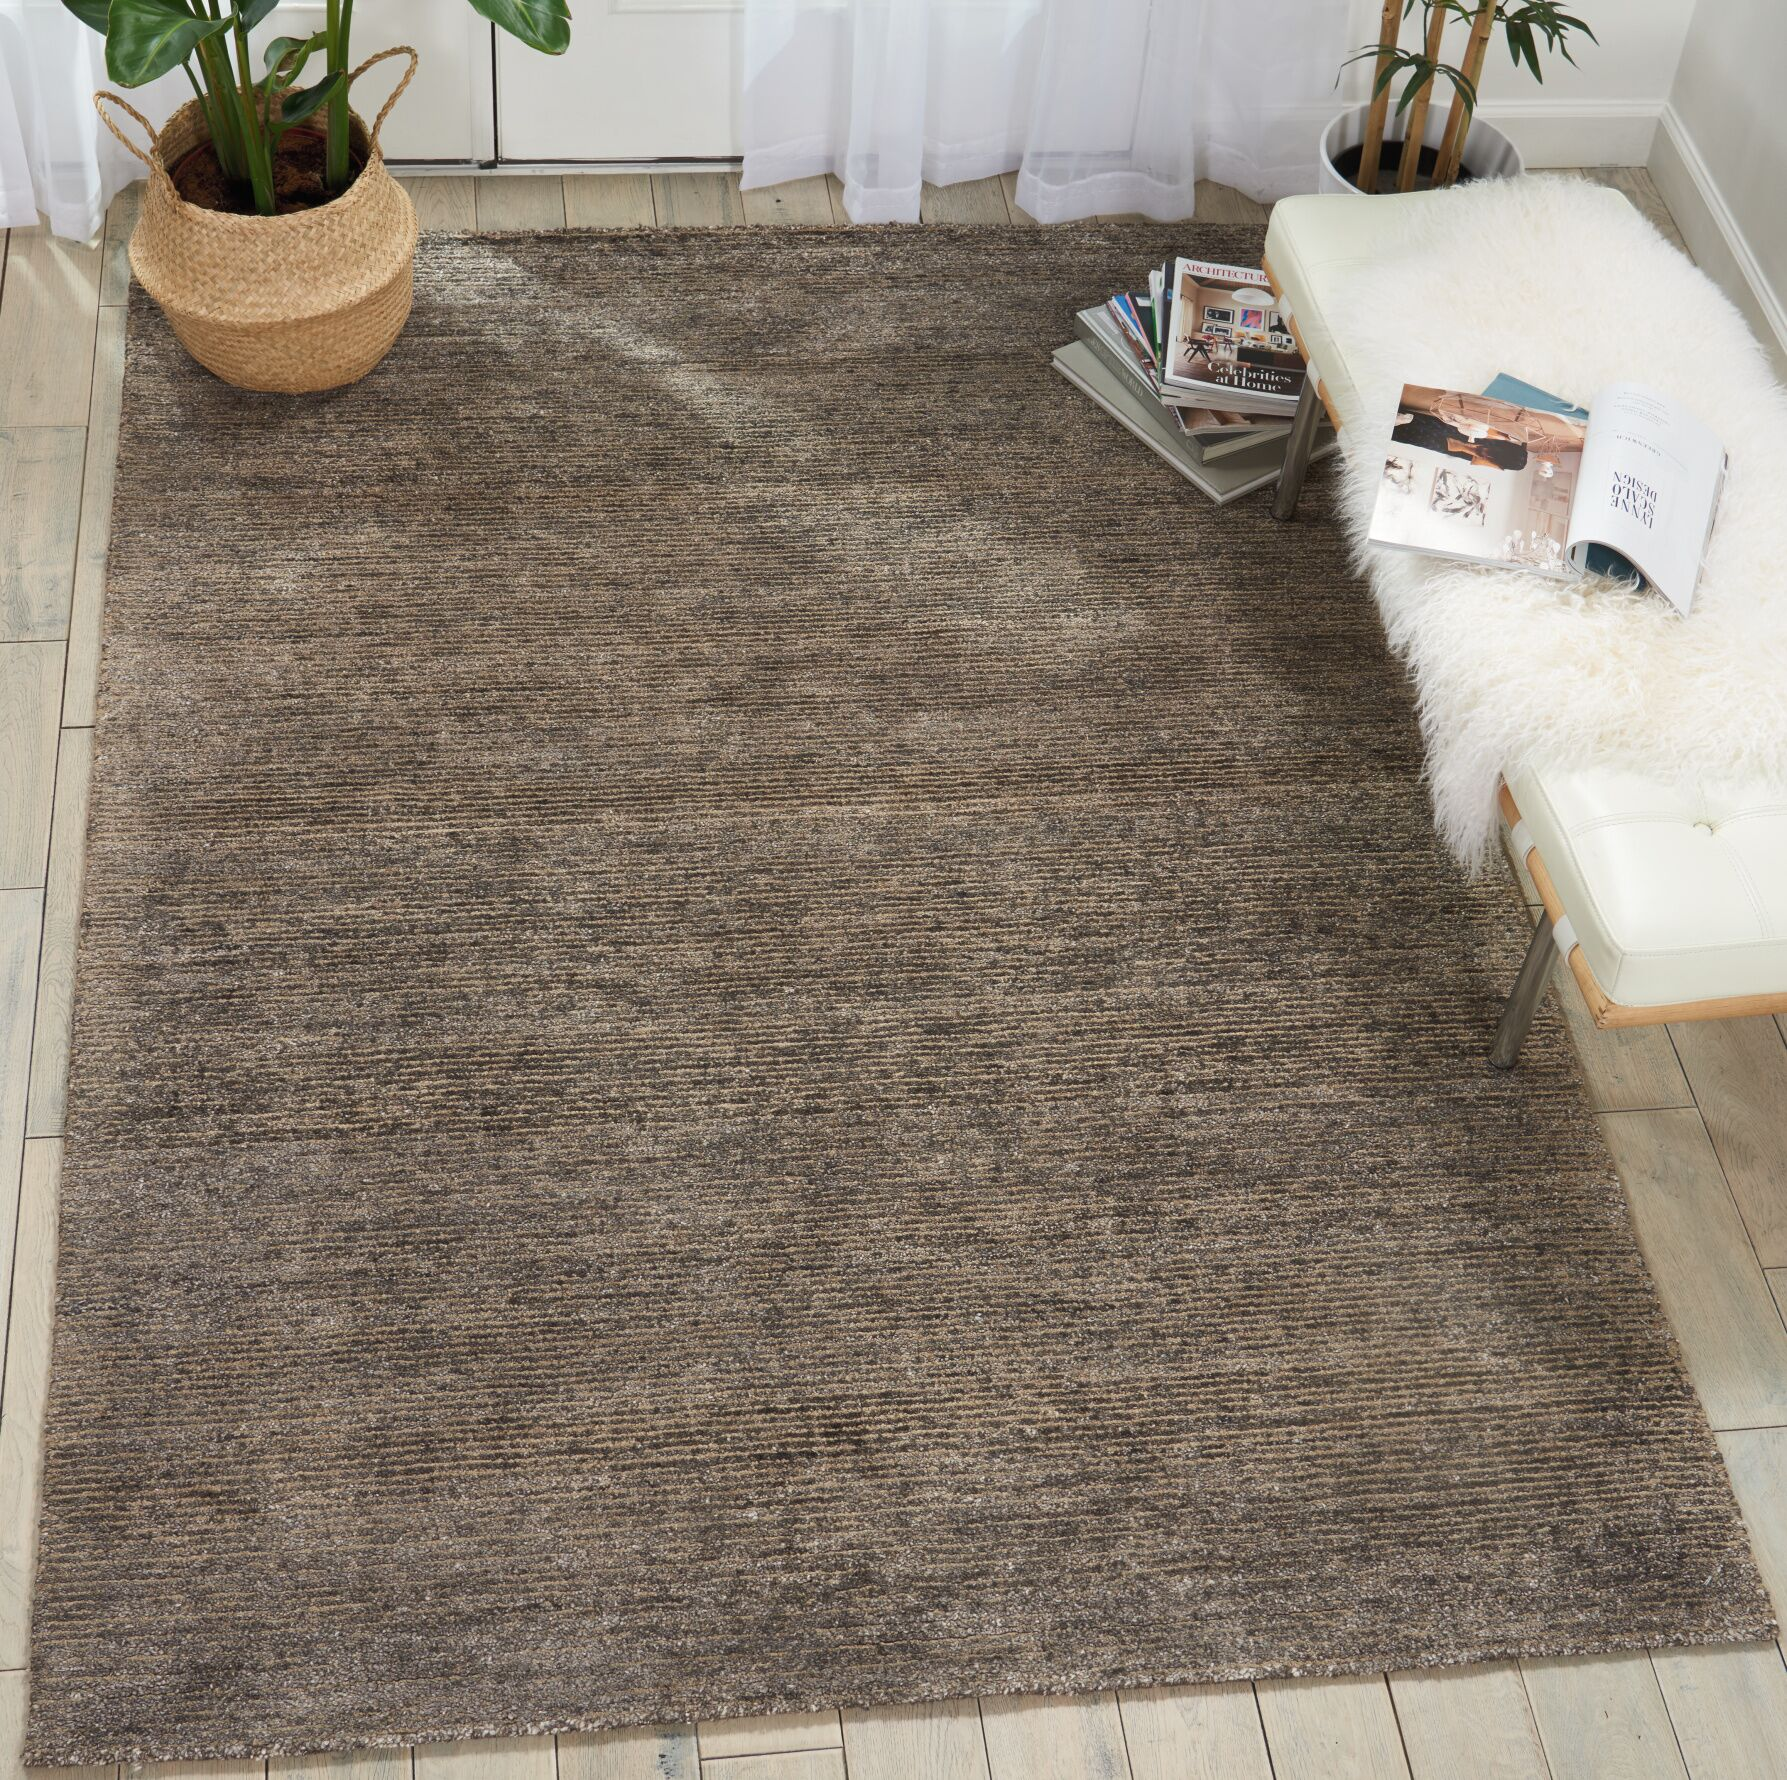 Romans Solid Hand-Tufted Charcoal Area Rug Rug Size: Rectangle 9'6